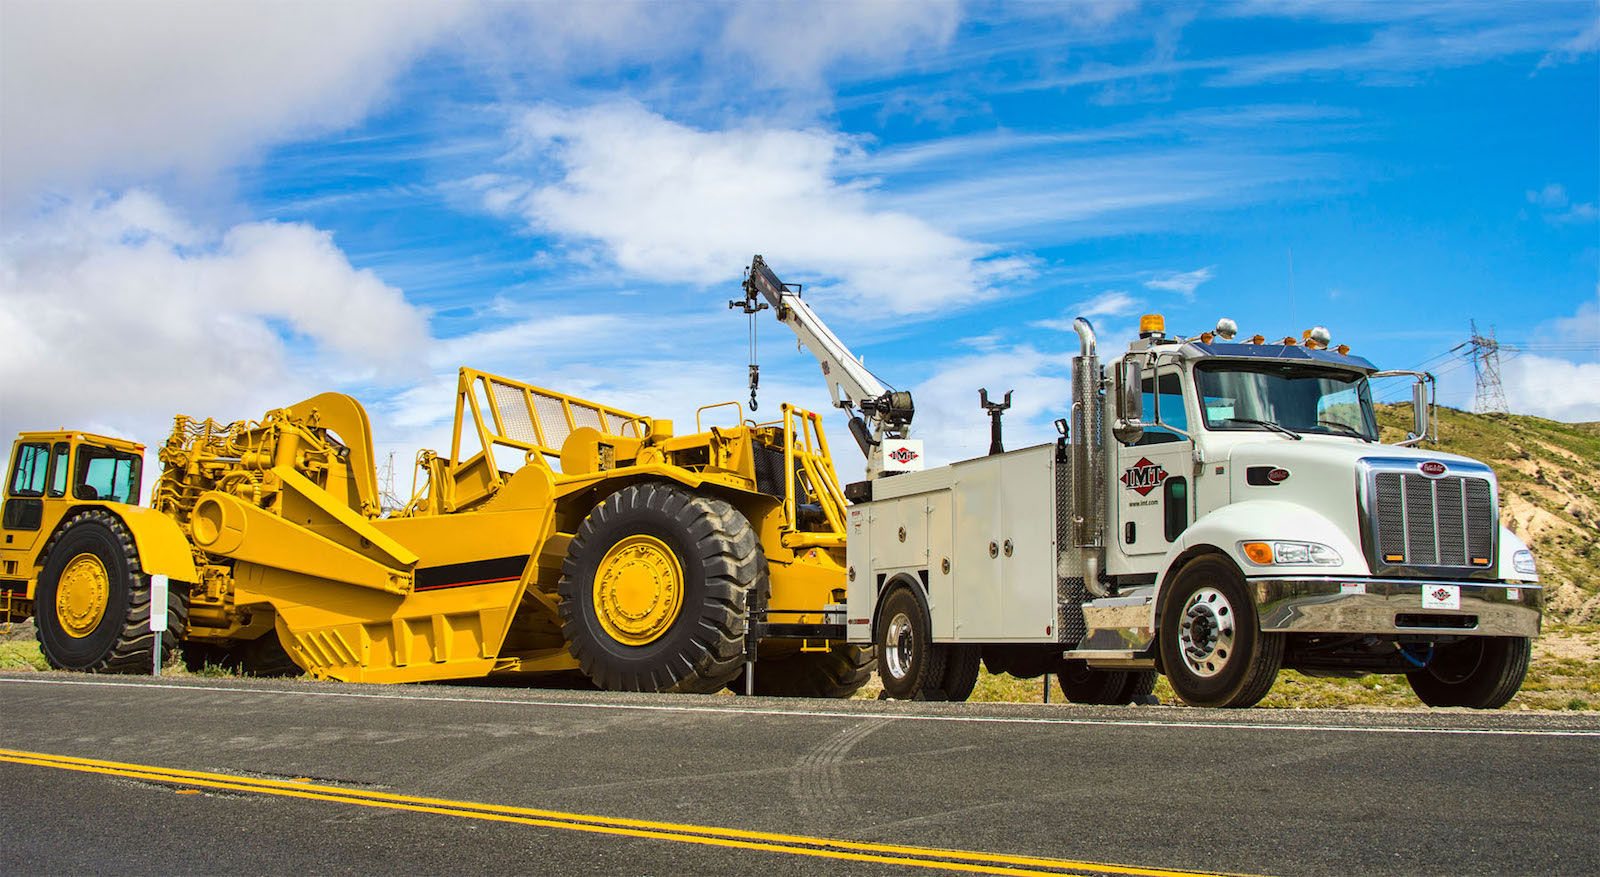 Caterpillar is shooting for $28 billion in service sales by 2026.